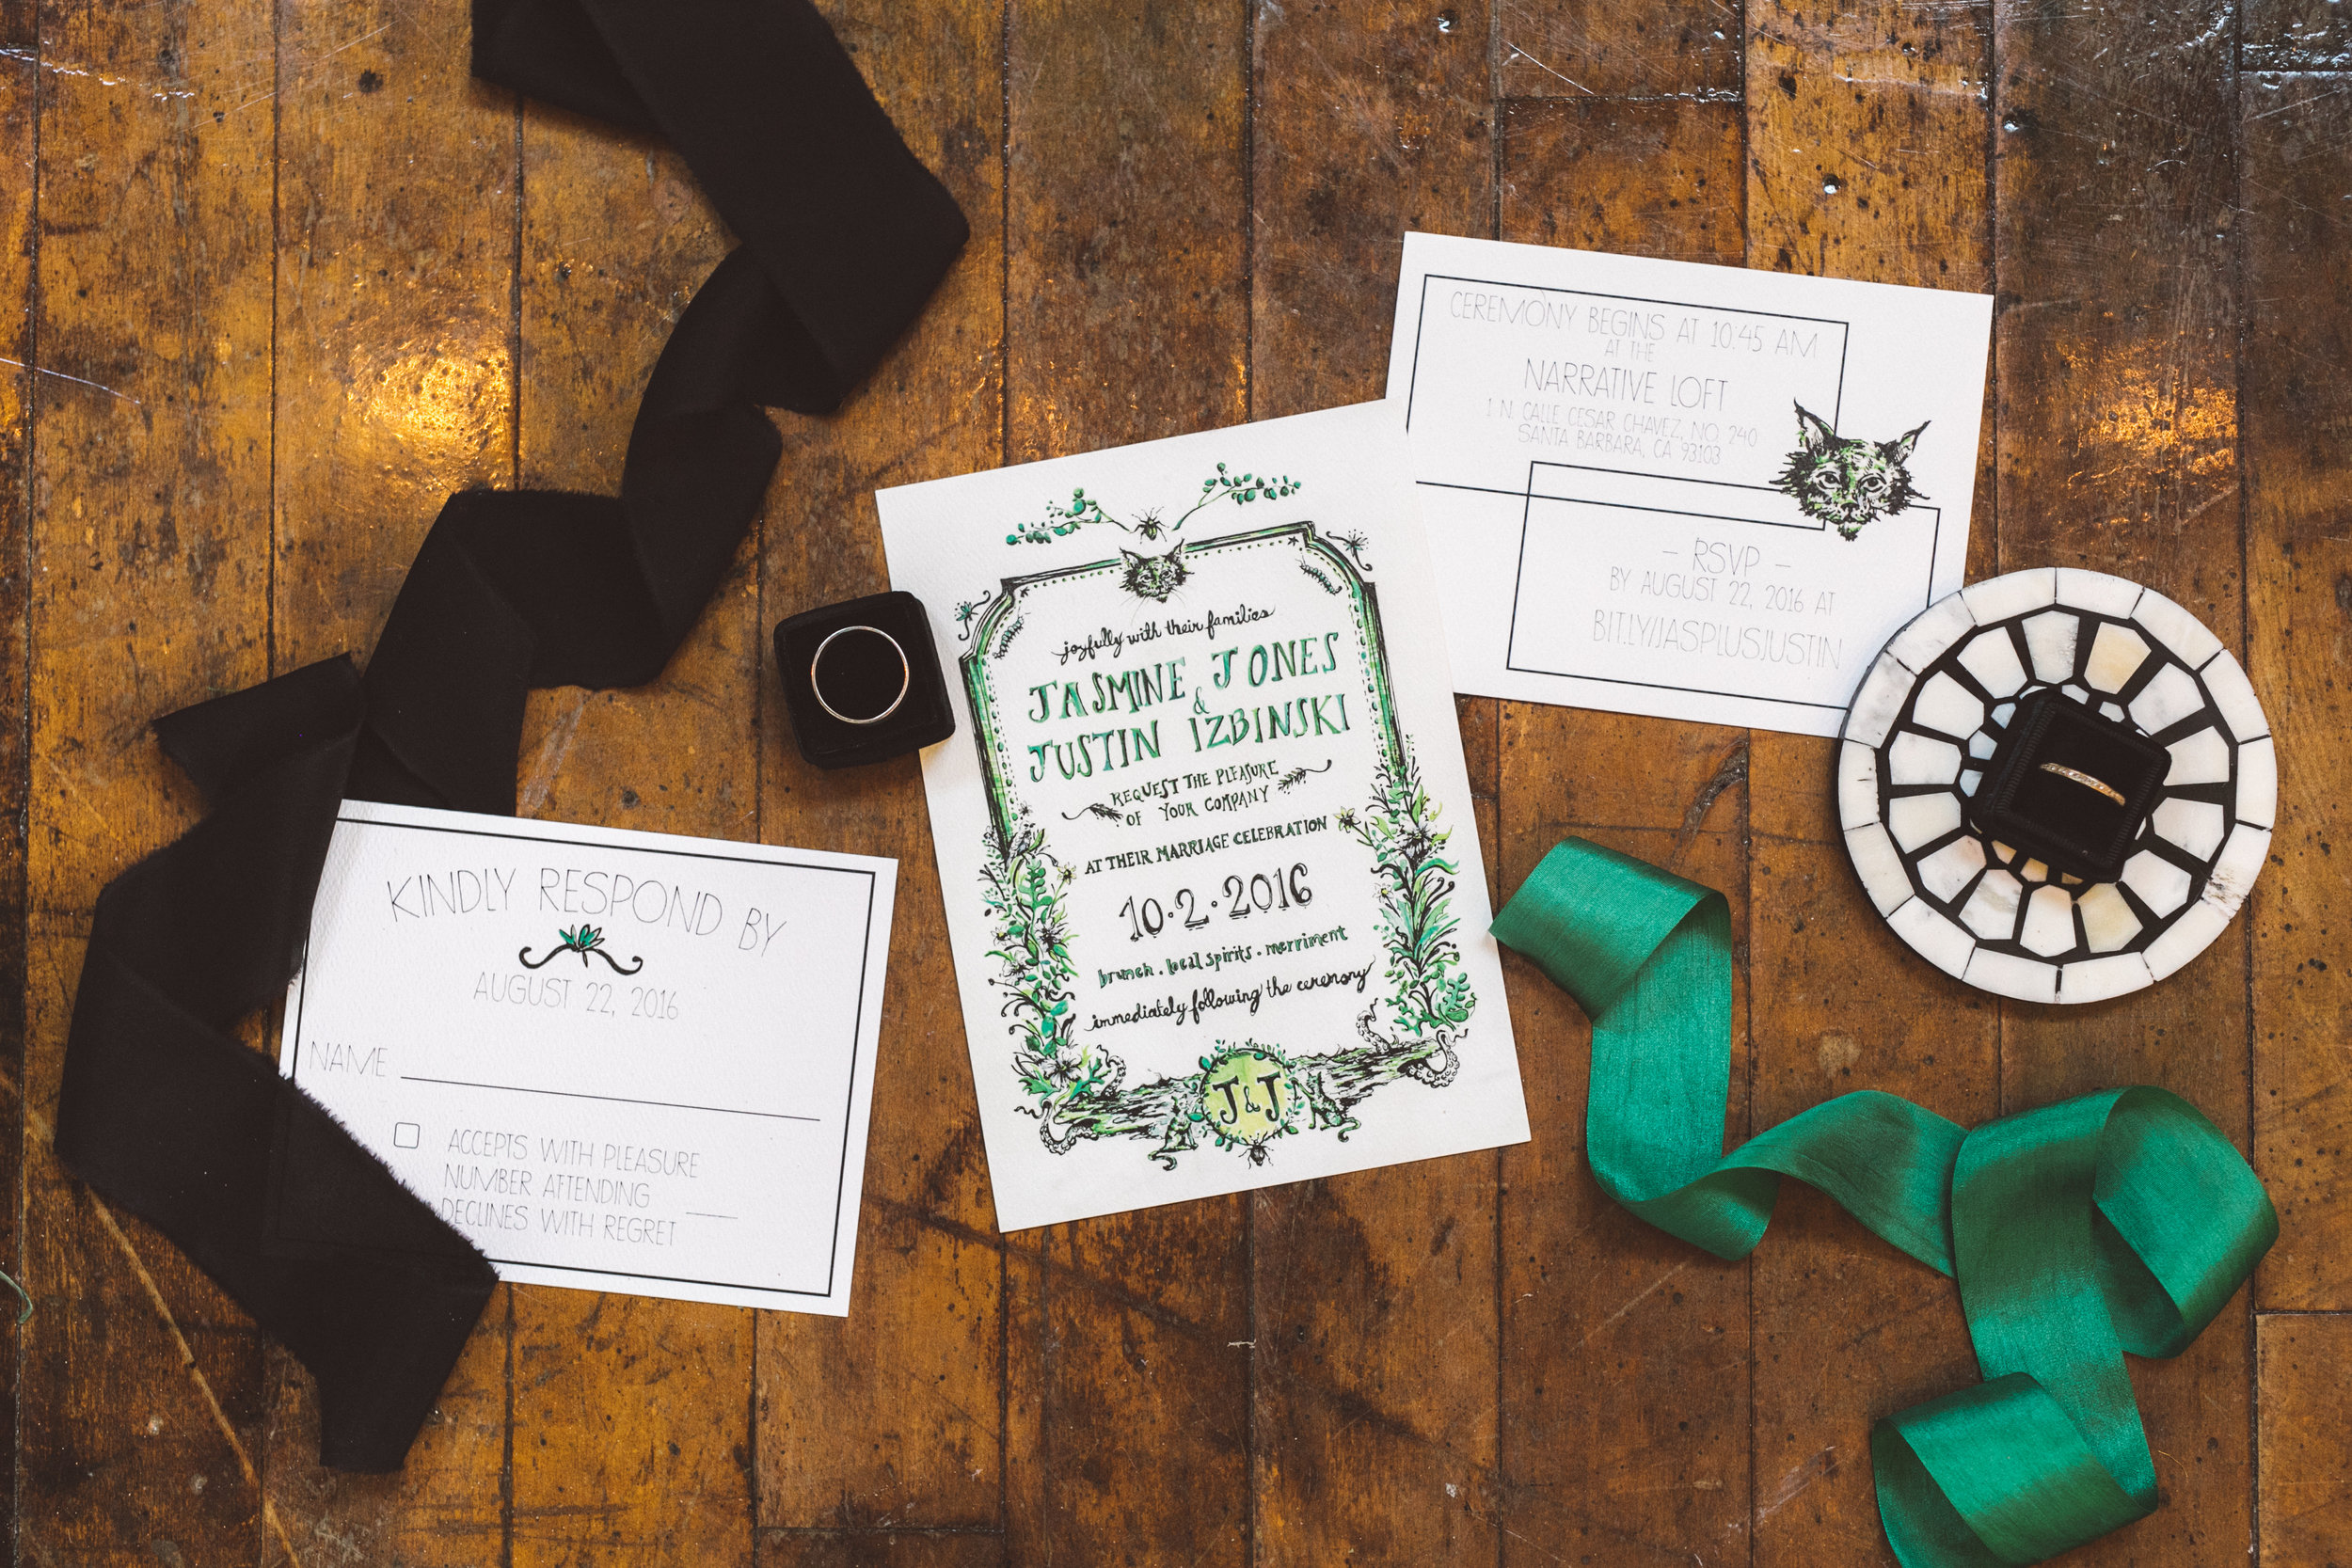 The hand designed invitations.